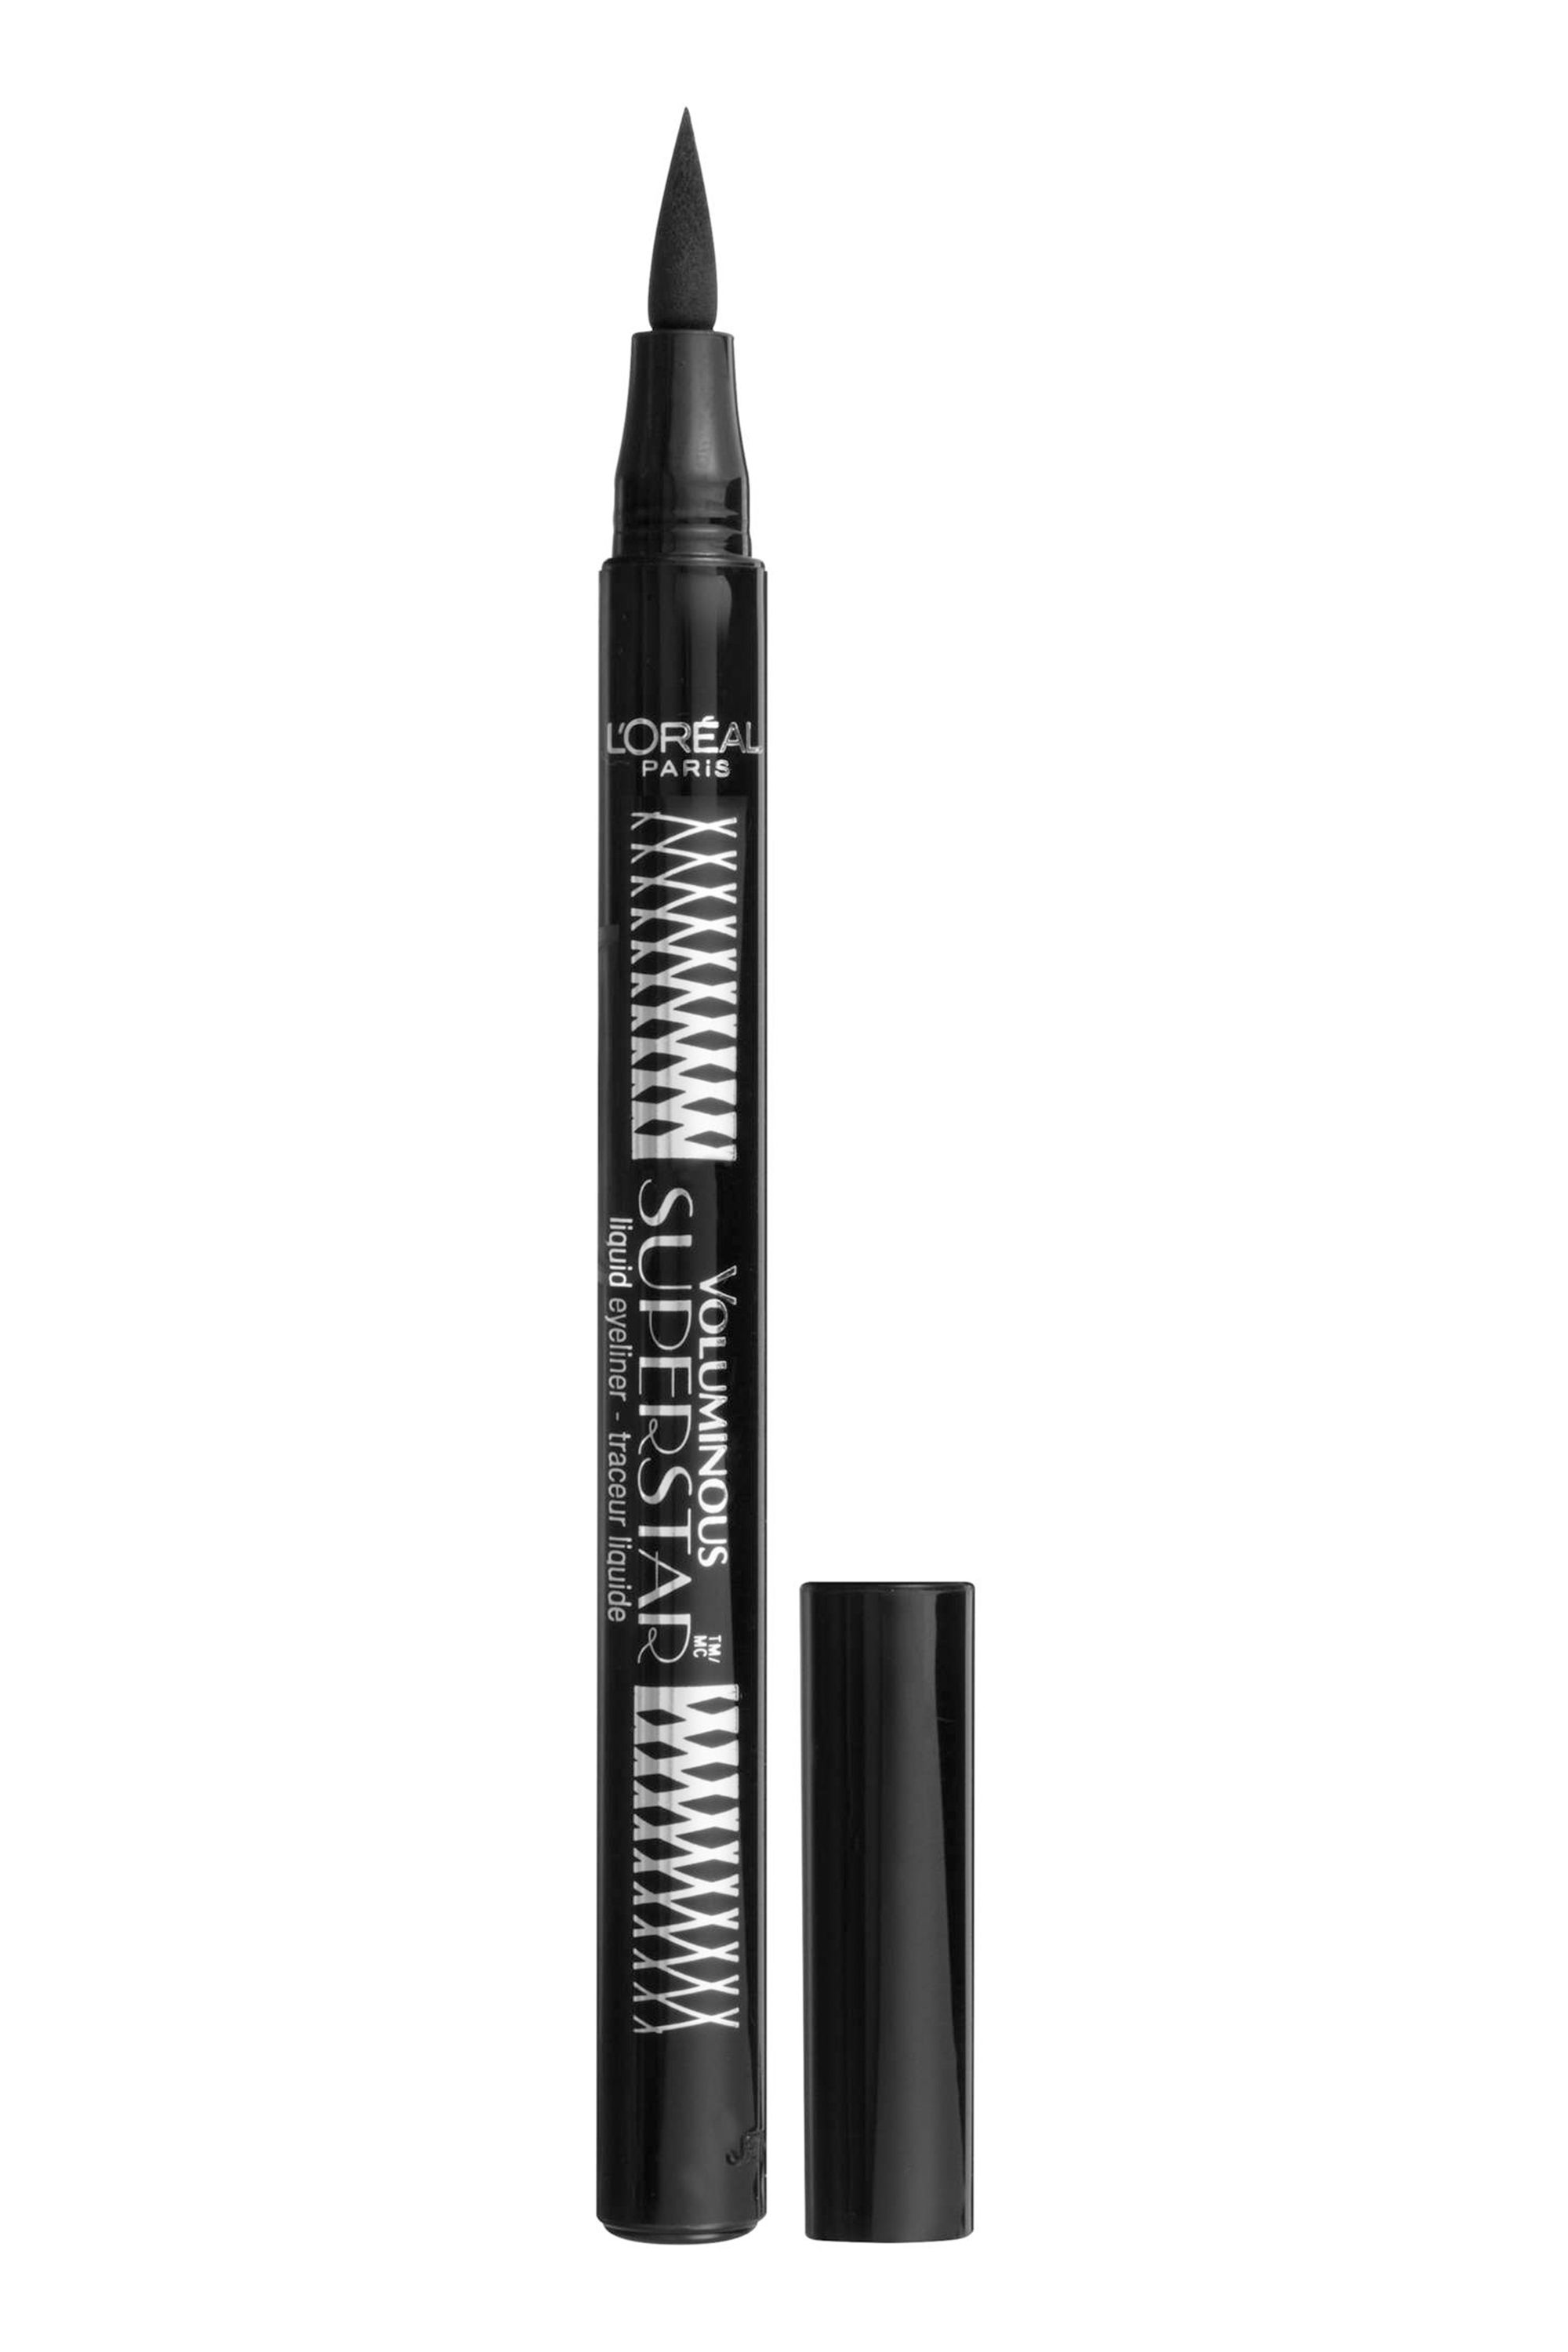 "<p>As someone who wears liner just about every single day, I've tried a ton on the market and always seem to go back to this one. This liner is the definition of no fuss, no muss–<span class=""redactor-invisible-space"">a</span>n easy-to-apply gel that goes on super smoothly. What else could you want? &nbsp&#x3B;— Nikki Ogunnaike, Senior Fashion Editor</p><p><em data-redactor-tag=""em"" data-verified=""redactor"">L'Oreal Voluminous Superstar Liner, $10&#x3B; </em><a href=""https://www.lorealparisusa.com/products/makeup/eye/eyeliner/voluminous-superstar-liner.aspx?shade=202-Black""><em data-redactor-tag=""em"" data-verified=""redactor"">lorealparisusa.com</em></a></p>"